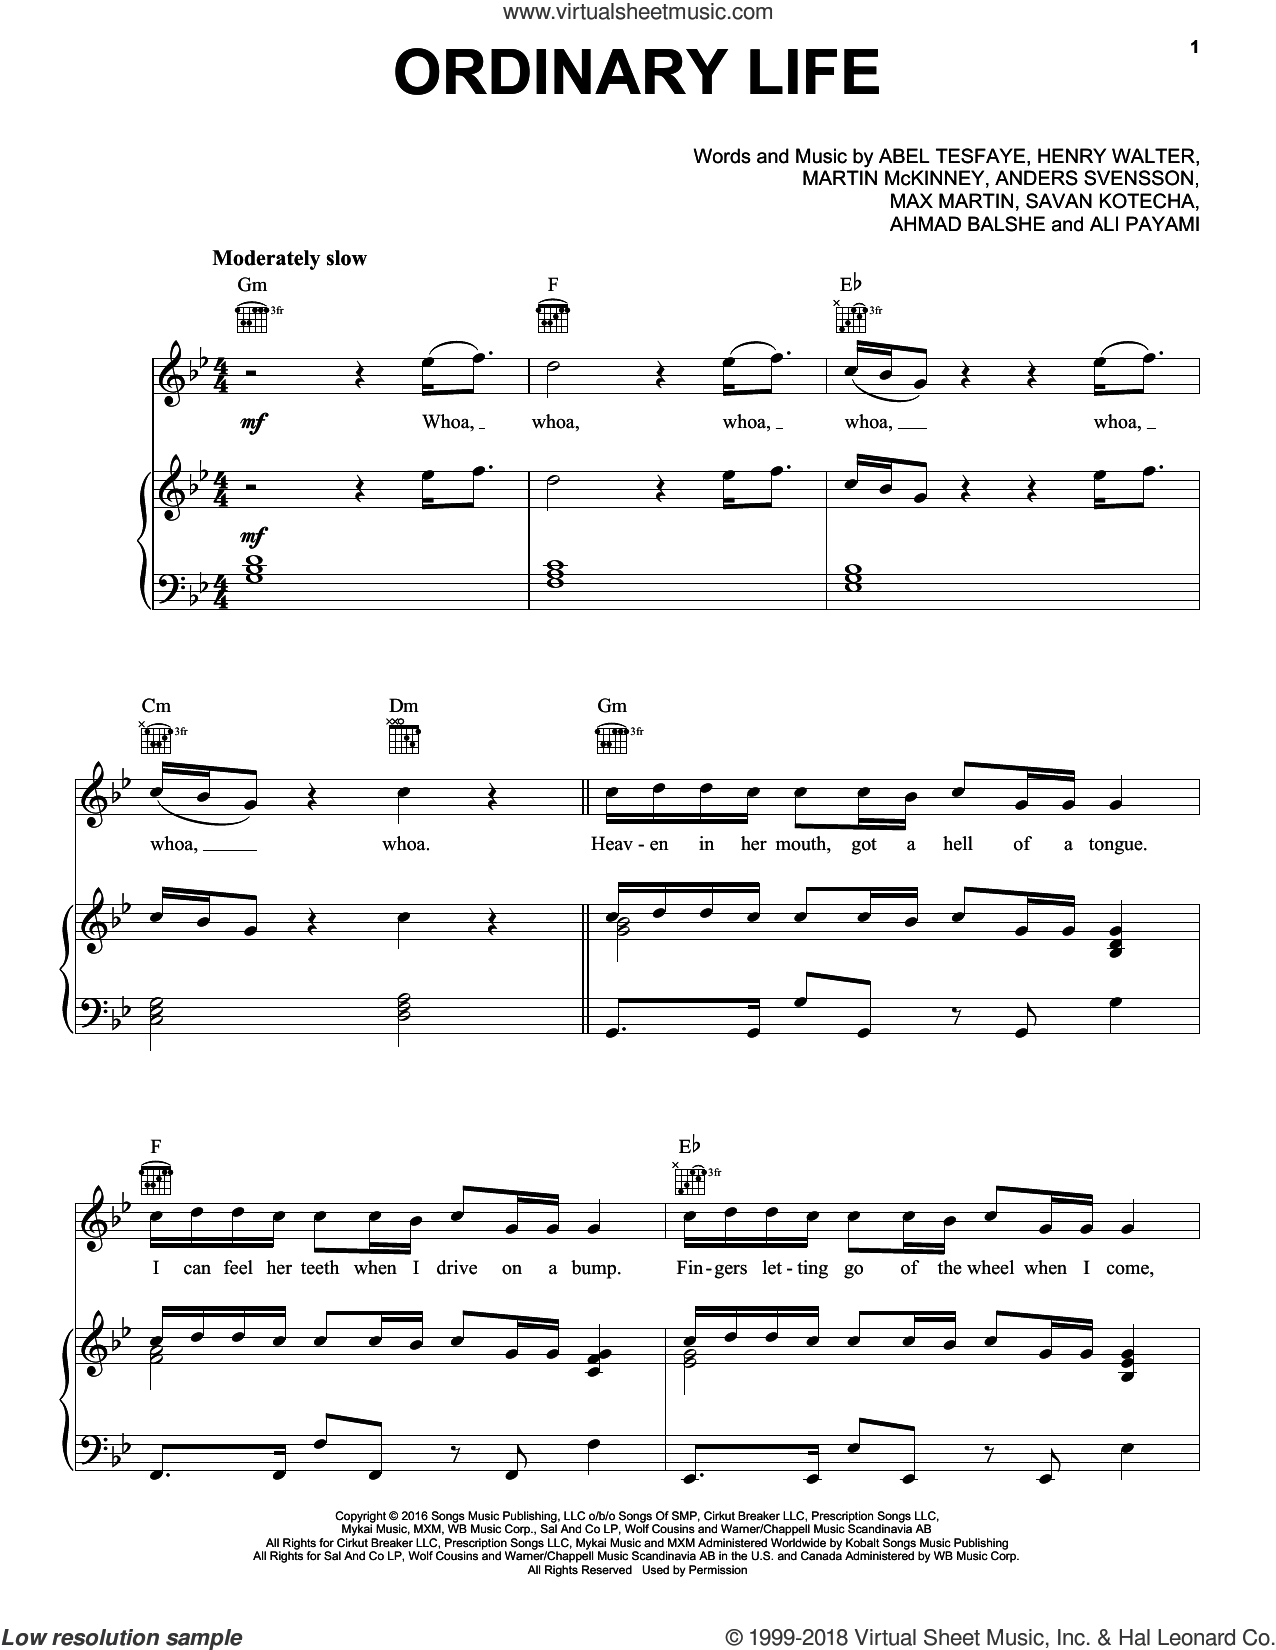 Ordinary Life sheet music for voice, piano or guitar by The Weeknd, Abel Tesfaye, Ahmad Balshe, Ali Payami, Anders Svensson, Henry Walter, Martin McKinney, Max Martin and Savan Kotecha, intermediate skill level